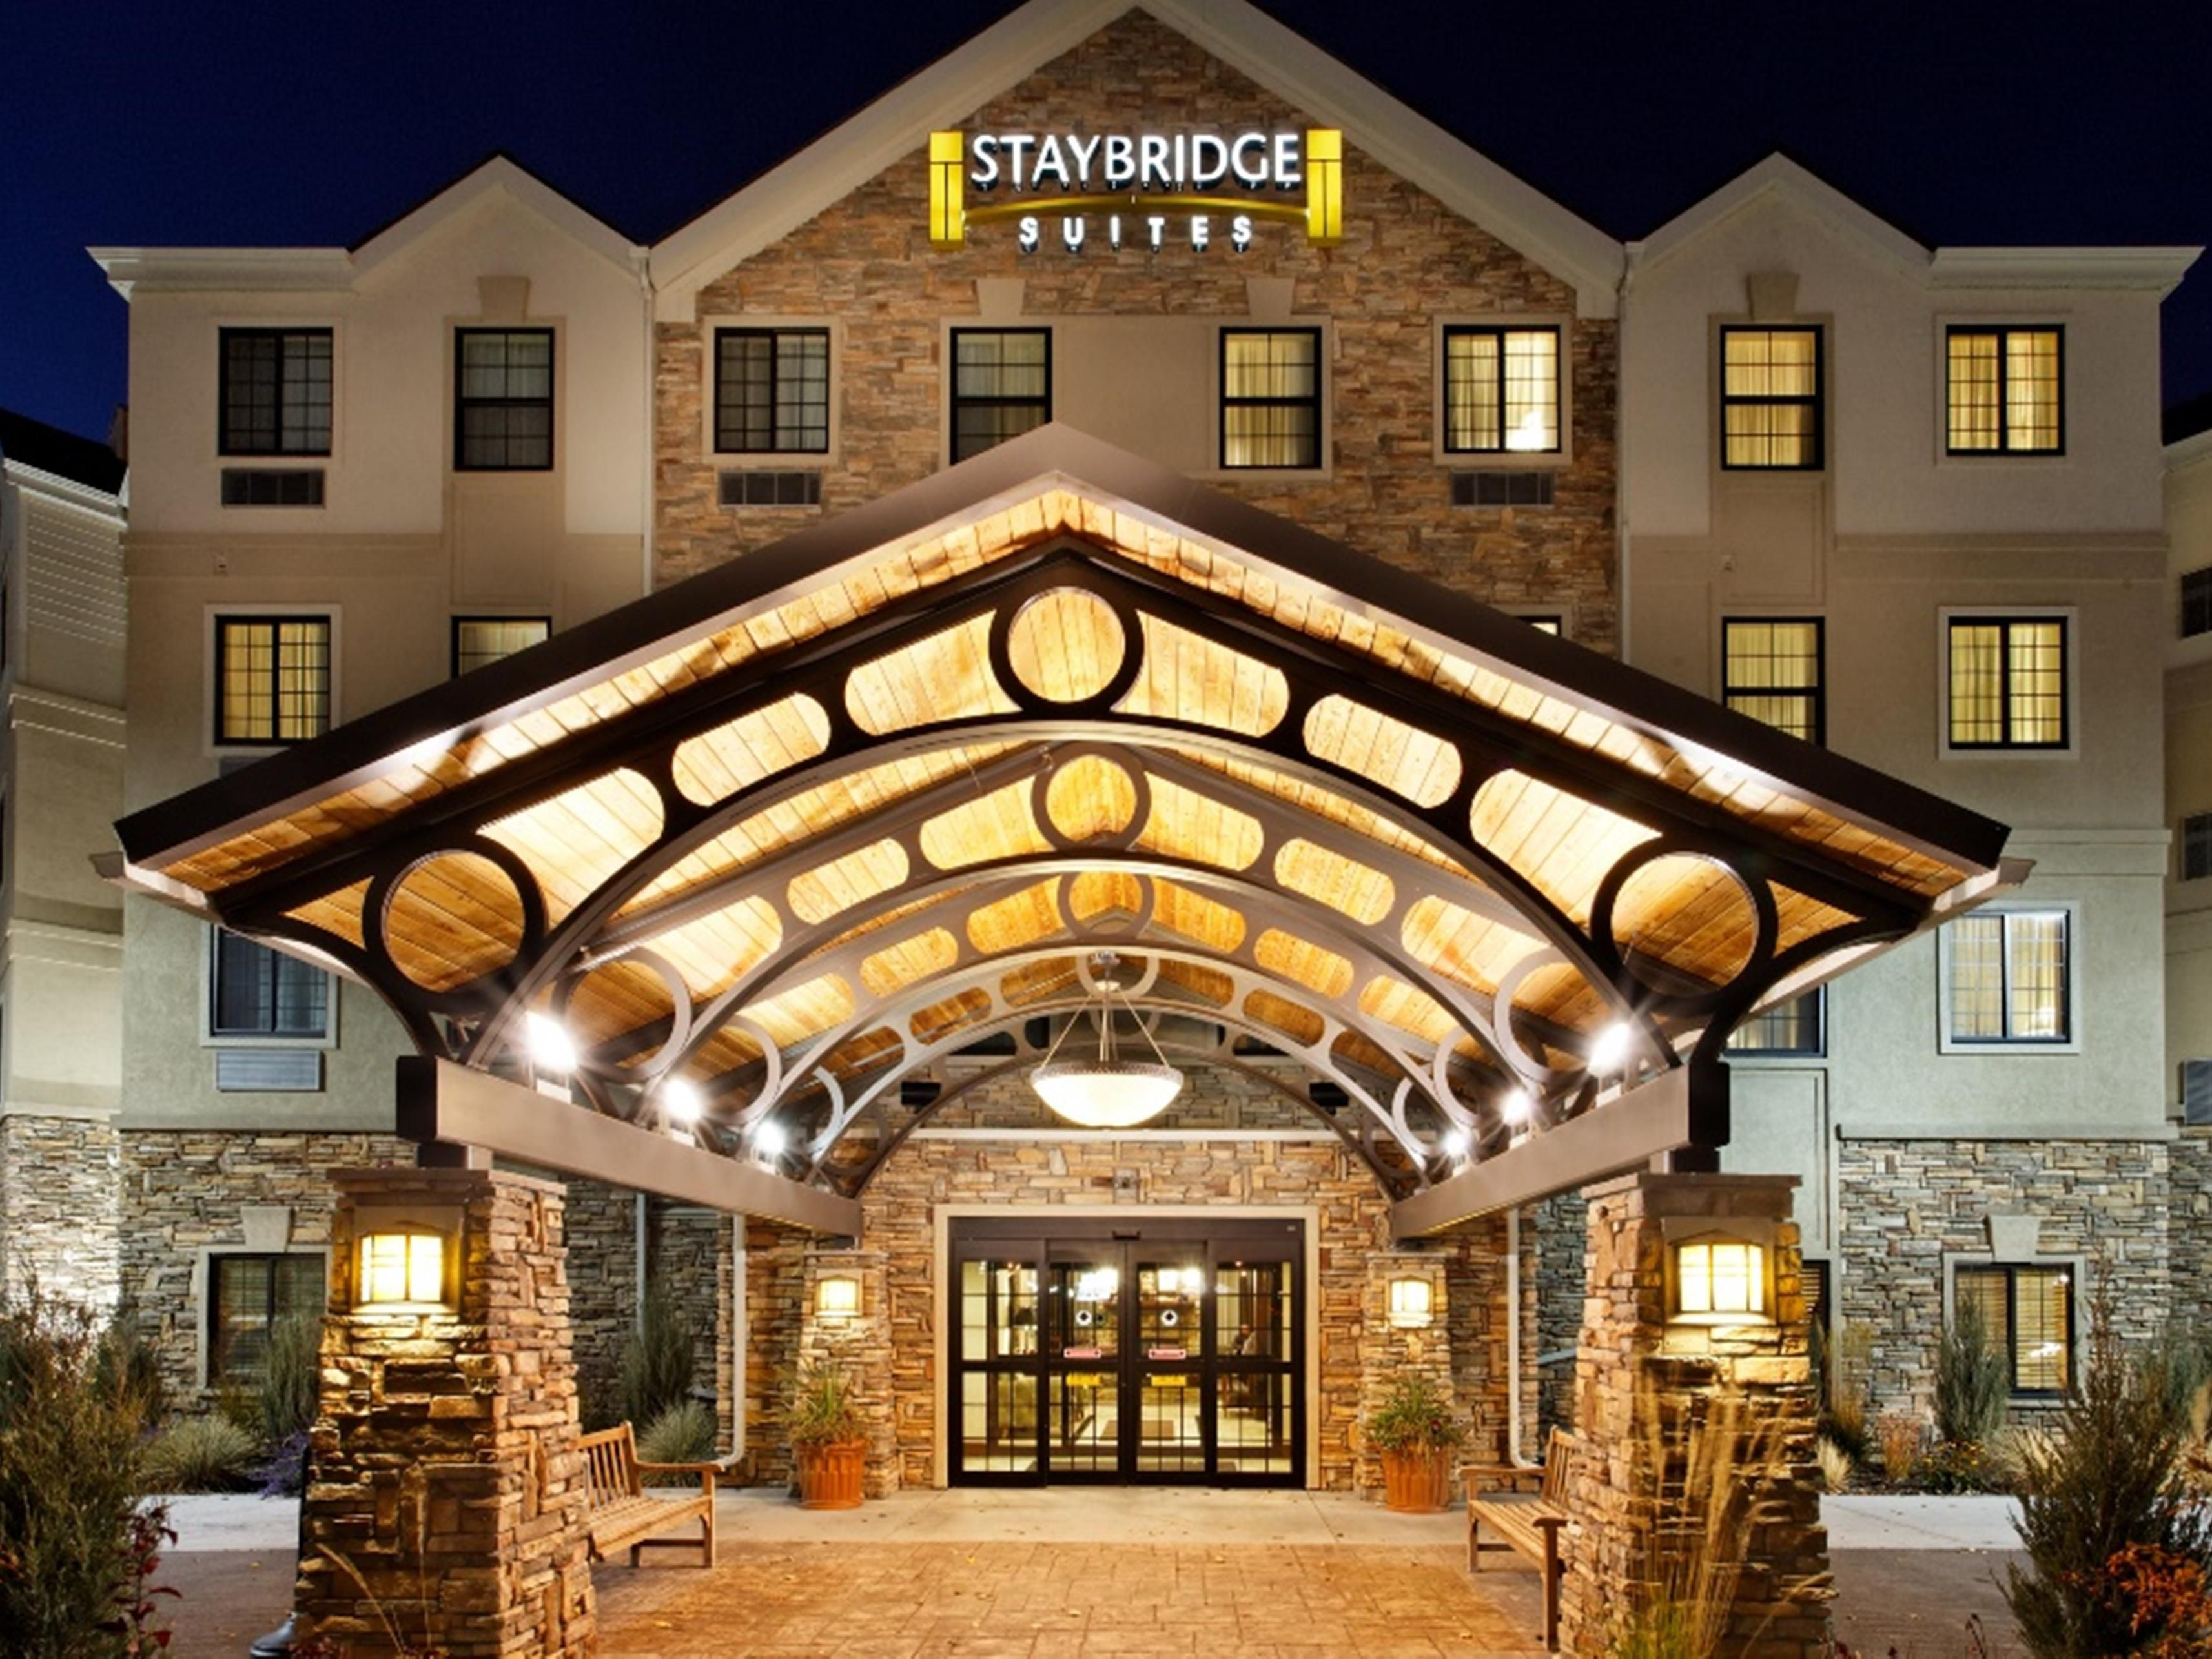 Rossford Hotels Staybridge Suites Toledo Perrysburg Extended Stay Hotel In Ohio